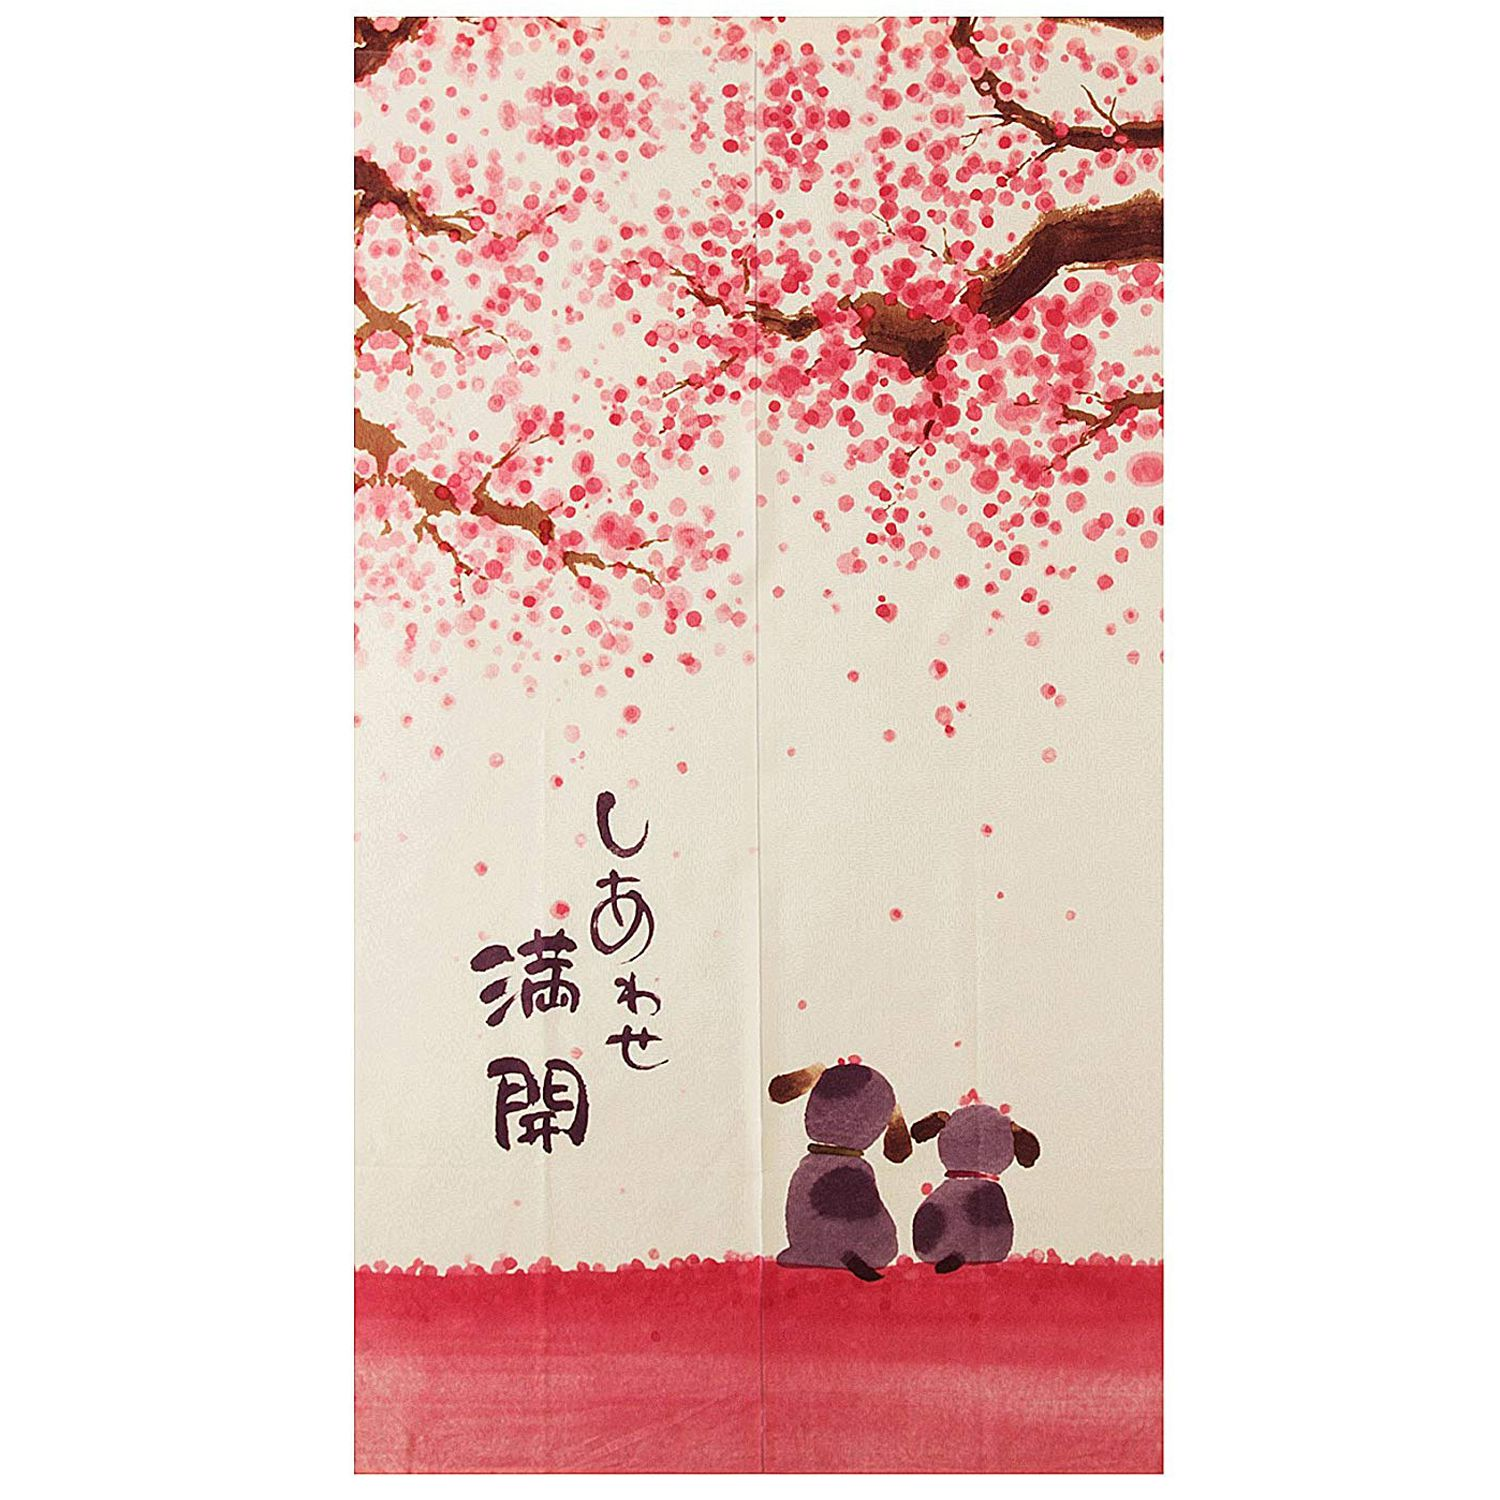 New Japanese Style Doorway Curtain 85X150Cm Happy Dogs Cherry Blossom